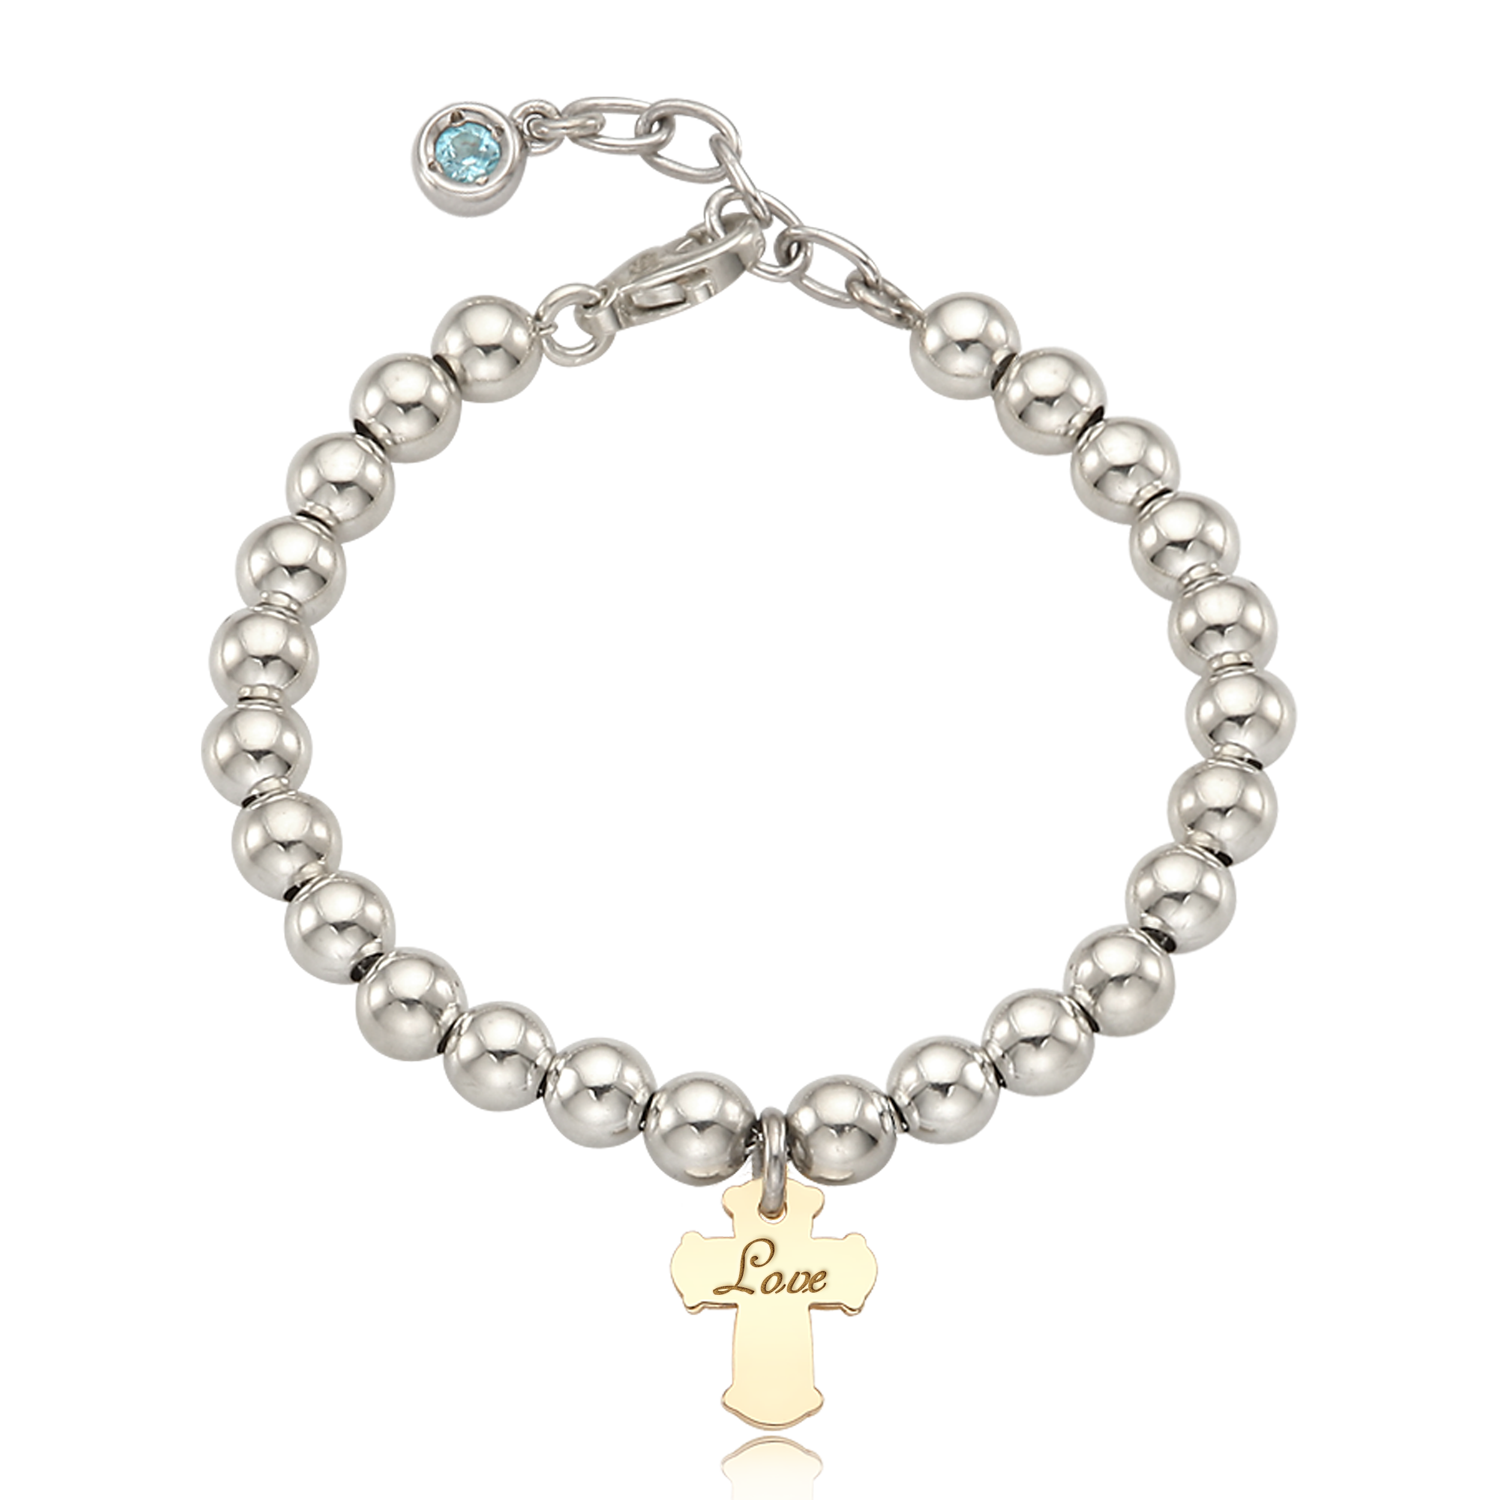 Silver 5mm ball bracelet-5K gold cross pendant 3mm natural birthstone can be engraved